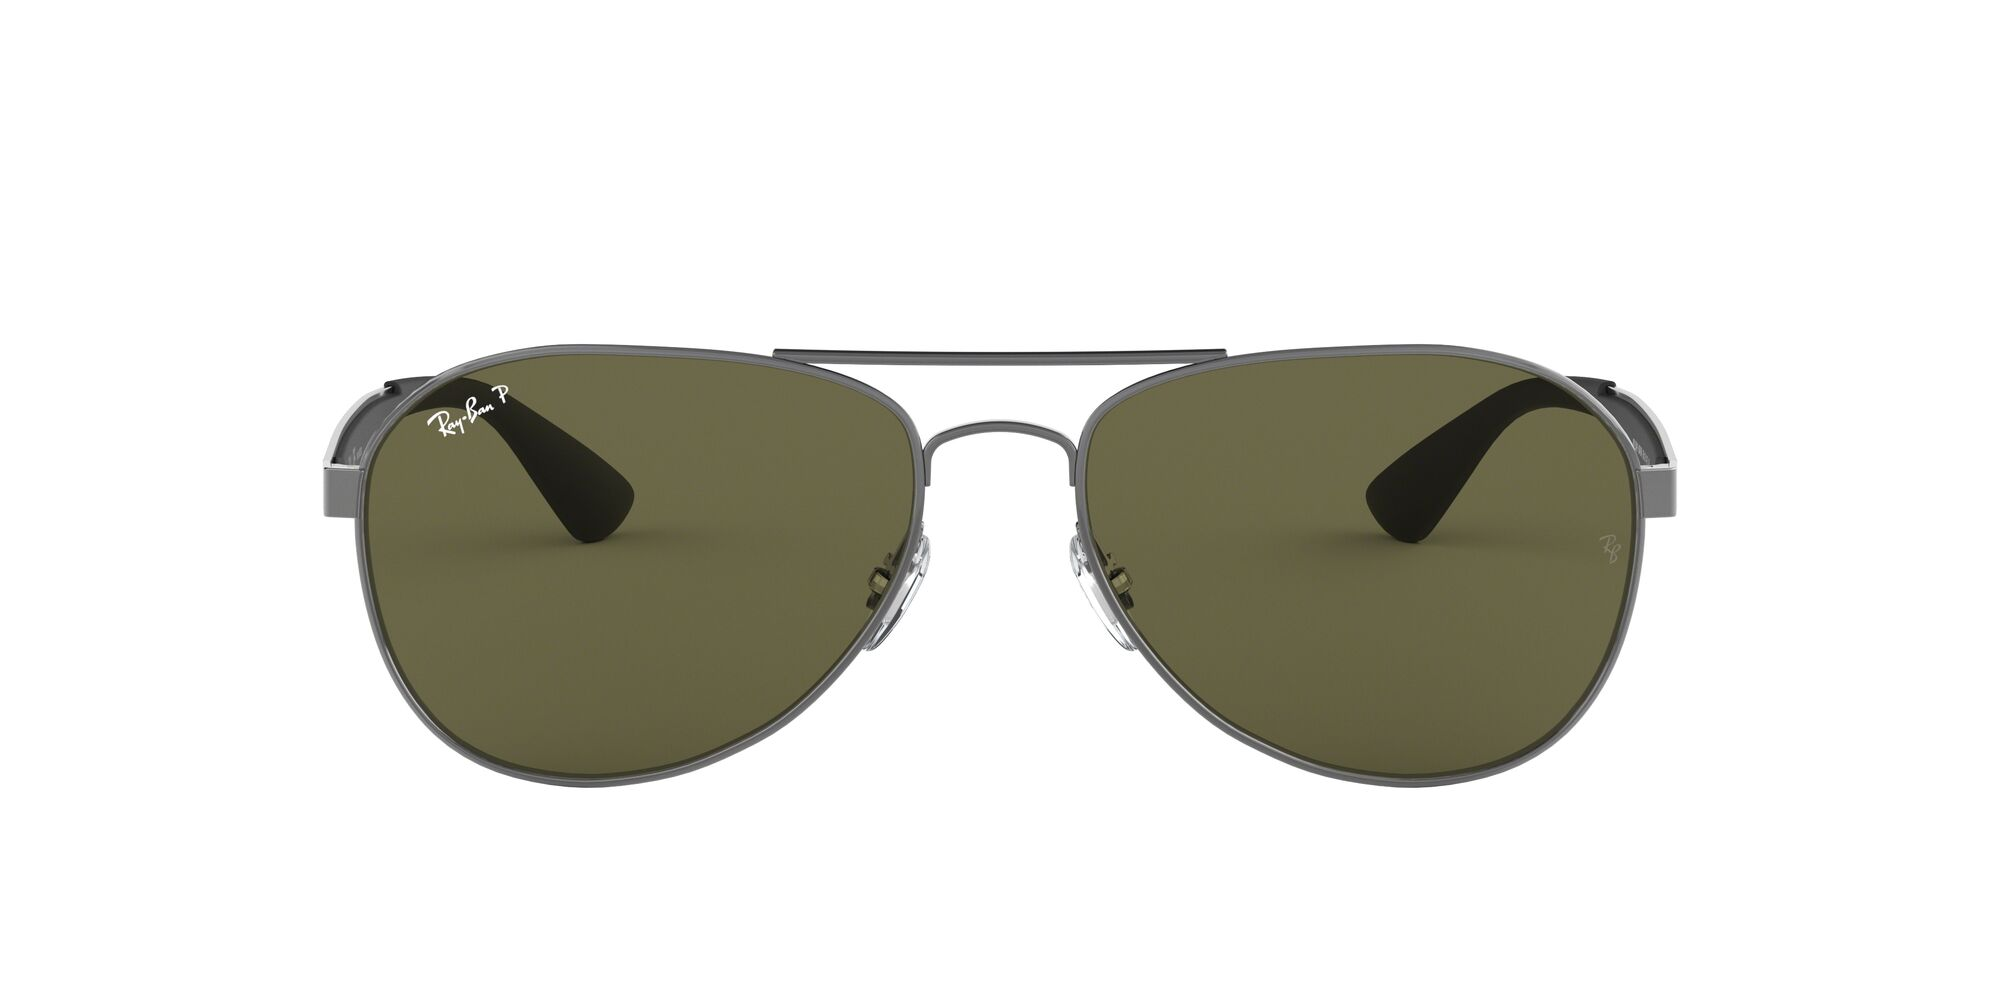 Front Ray-Ban Ray-Ban 0RB3549 004/9A 58/16 Grijs/Groen